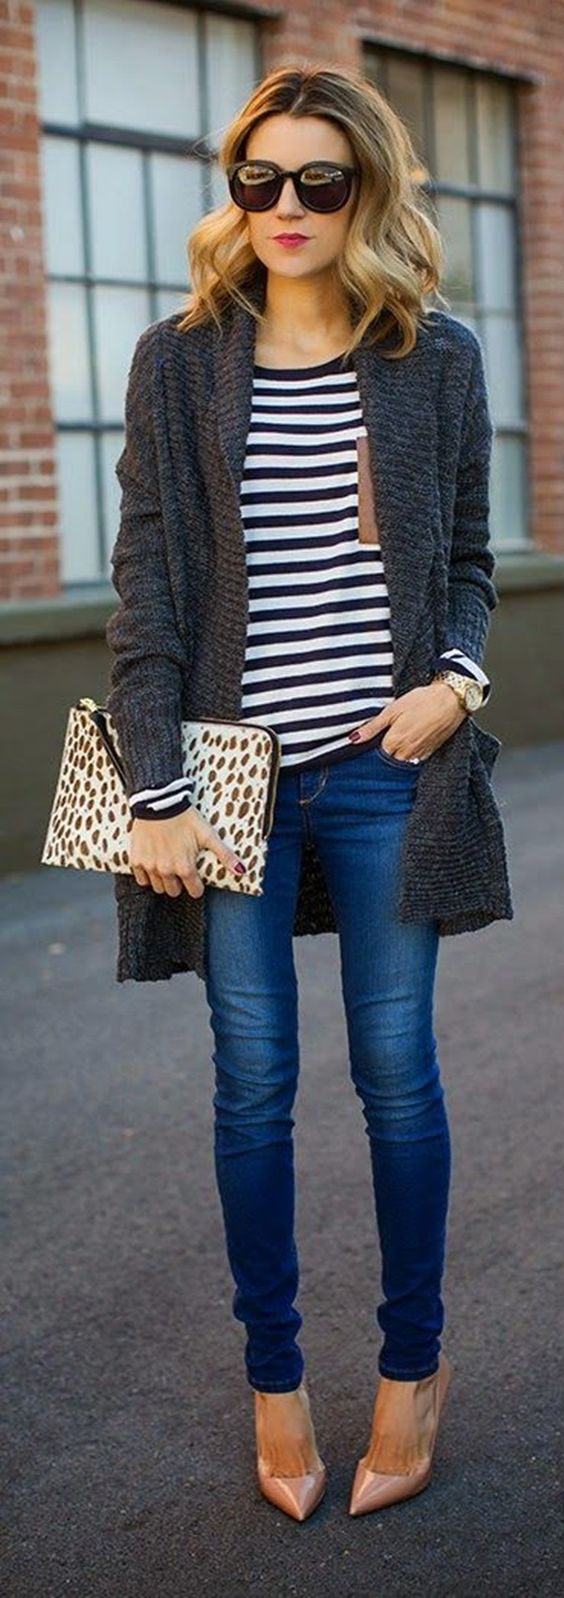 40 Best Cardigan Outfits Ideas To Keep Warm In Style